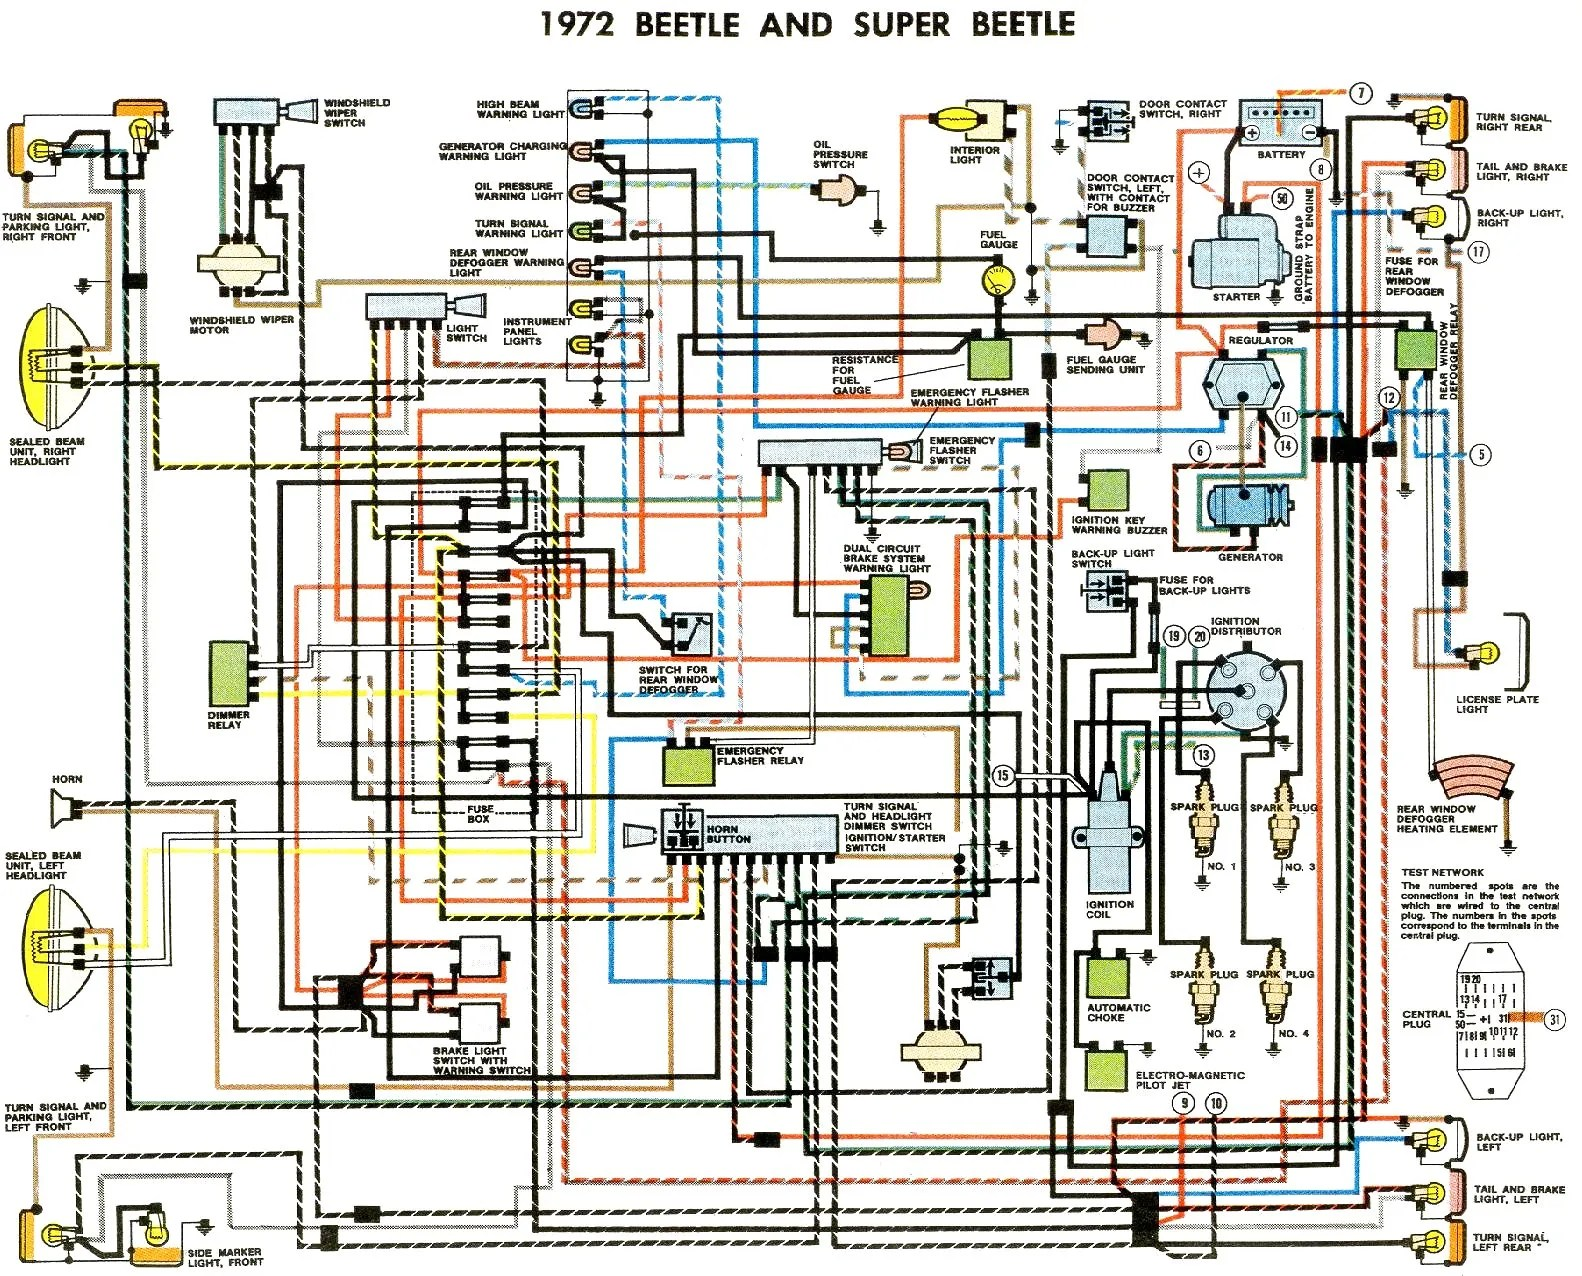 hight resolution of 2009 vw beetle fuse diagram wiring diagram 2009 volkswagen beetle fuse diagram